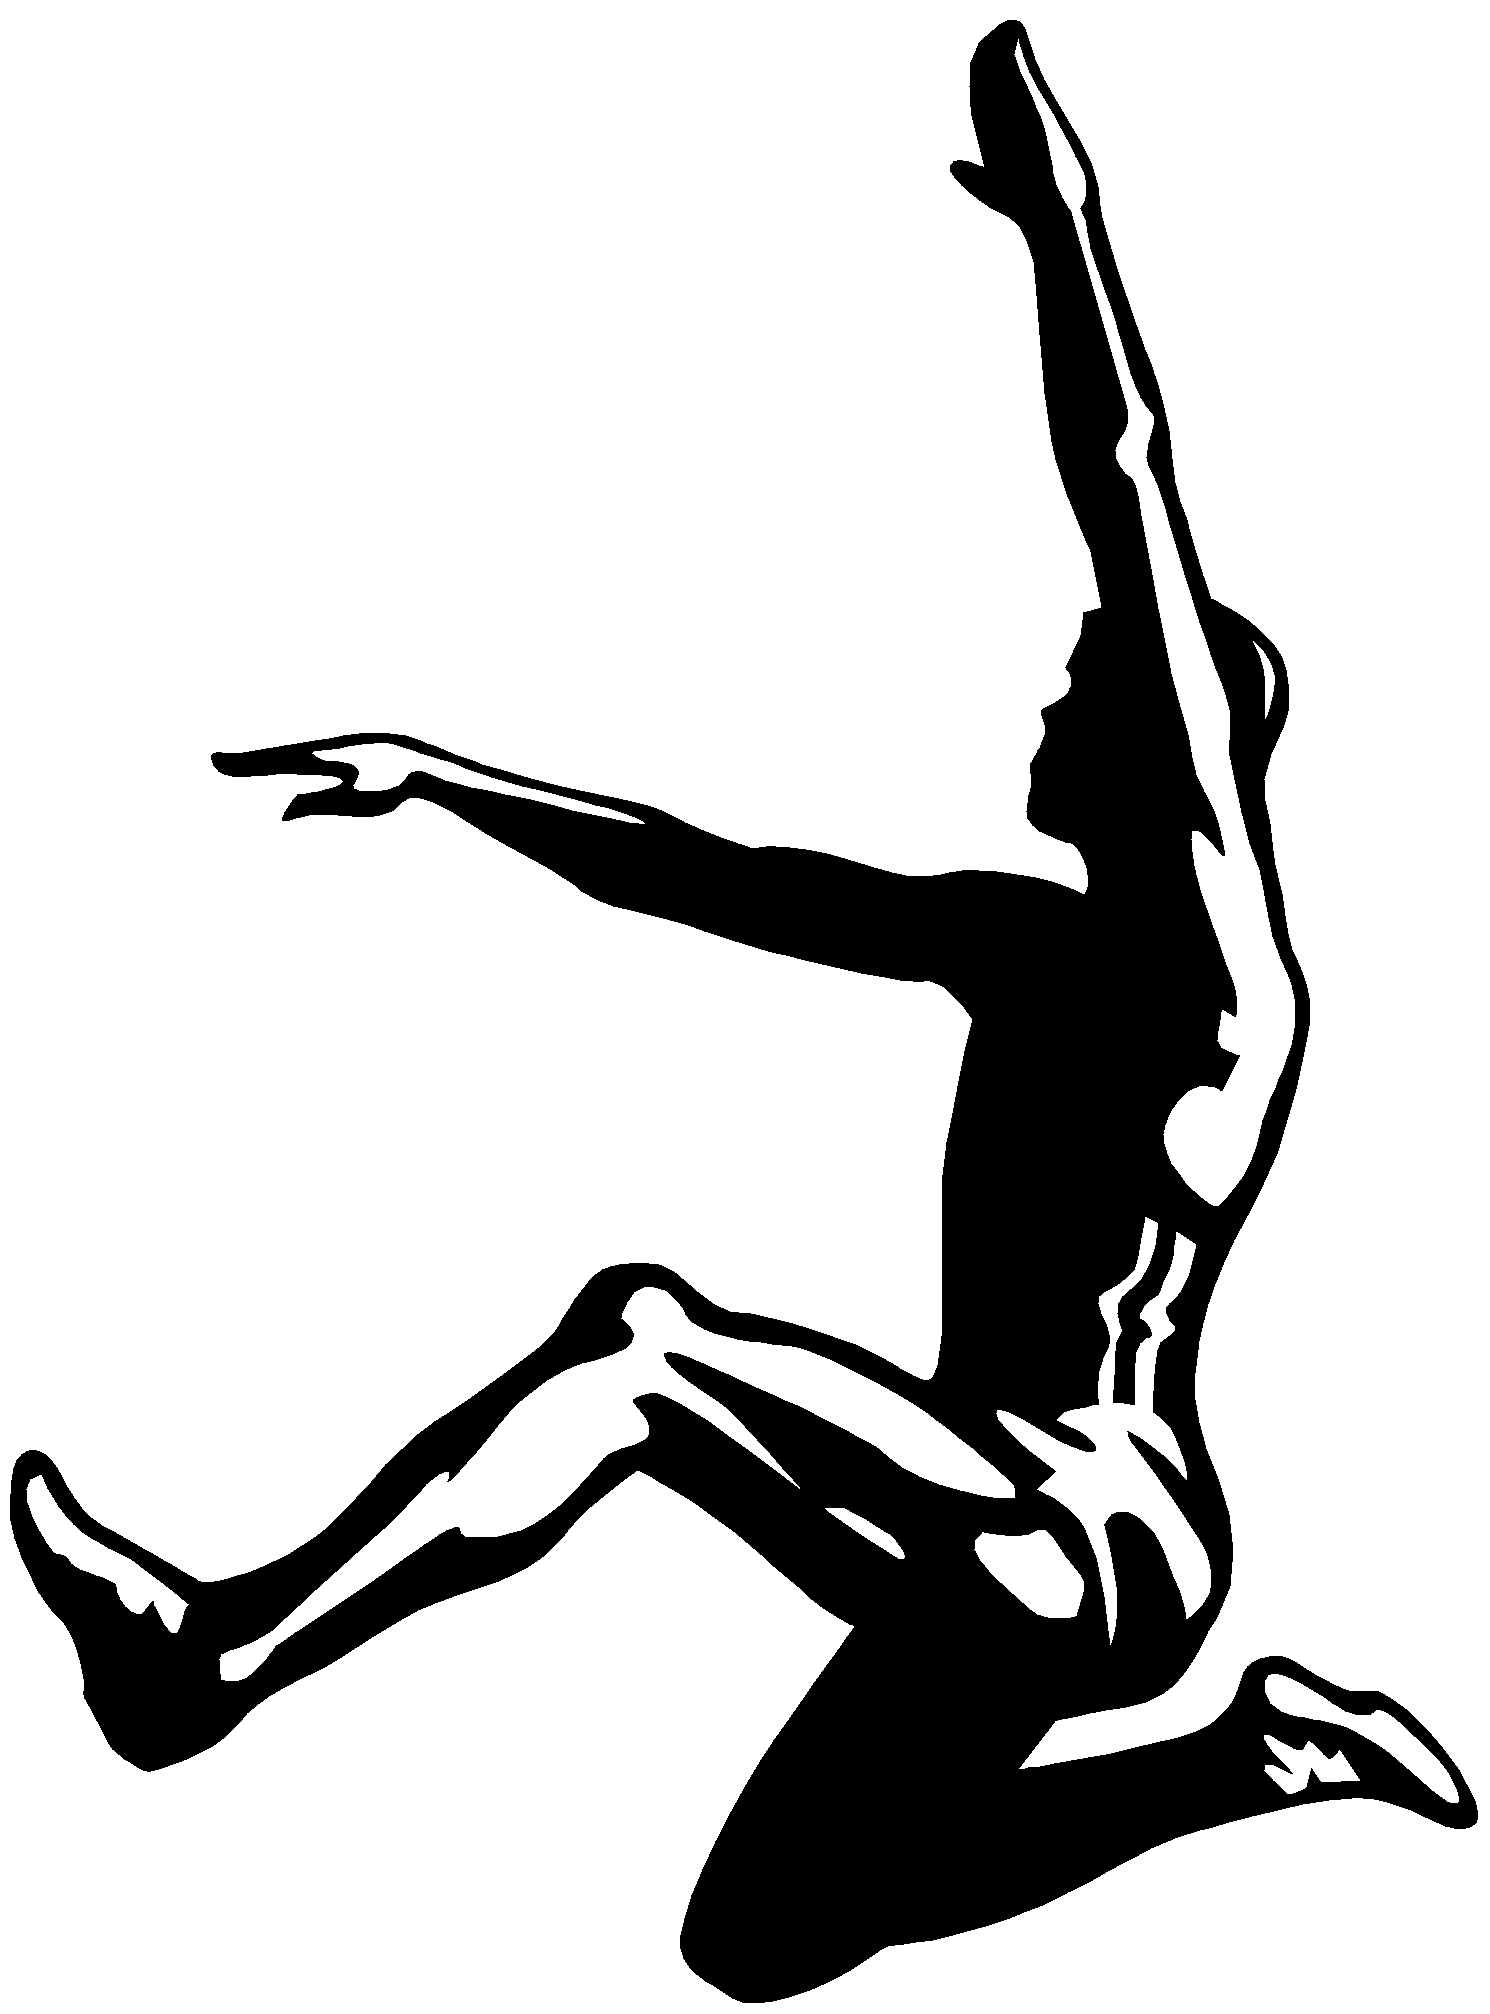 Free Track And Field Images Download Free Clip Art Free